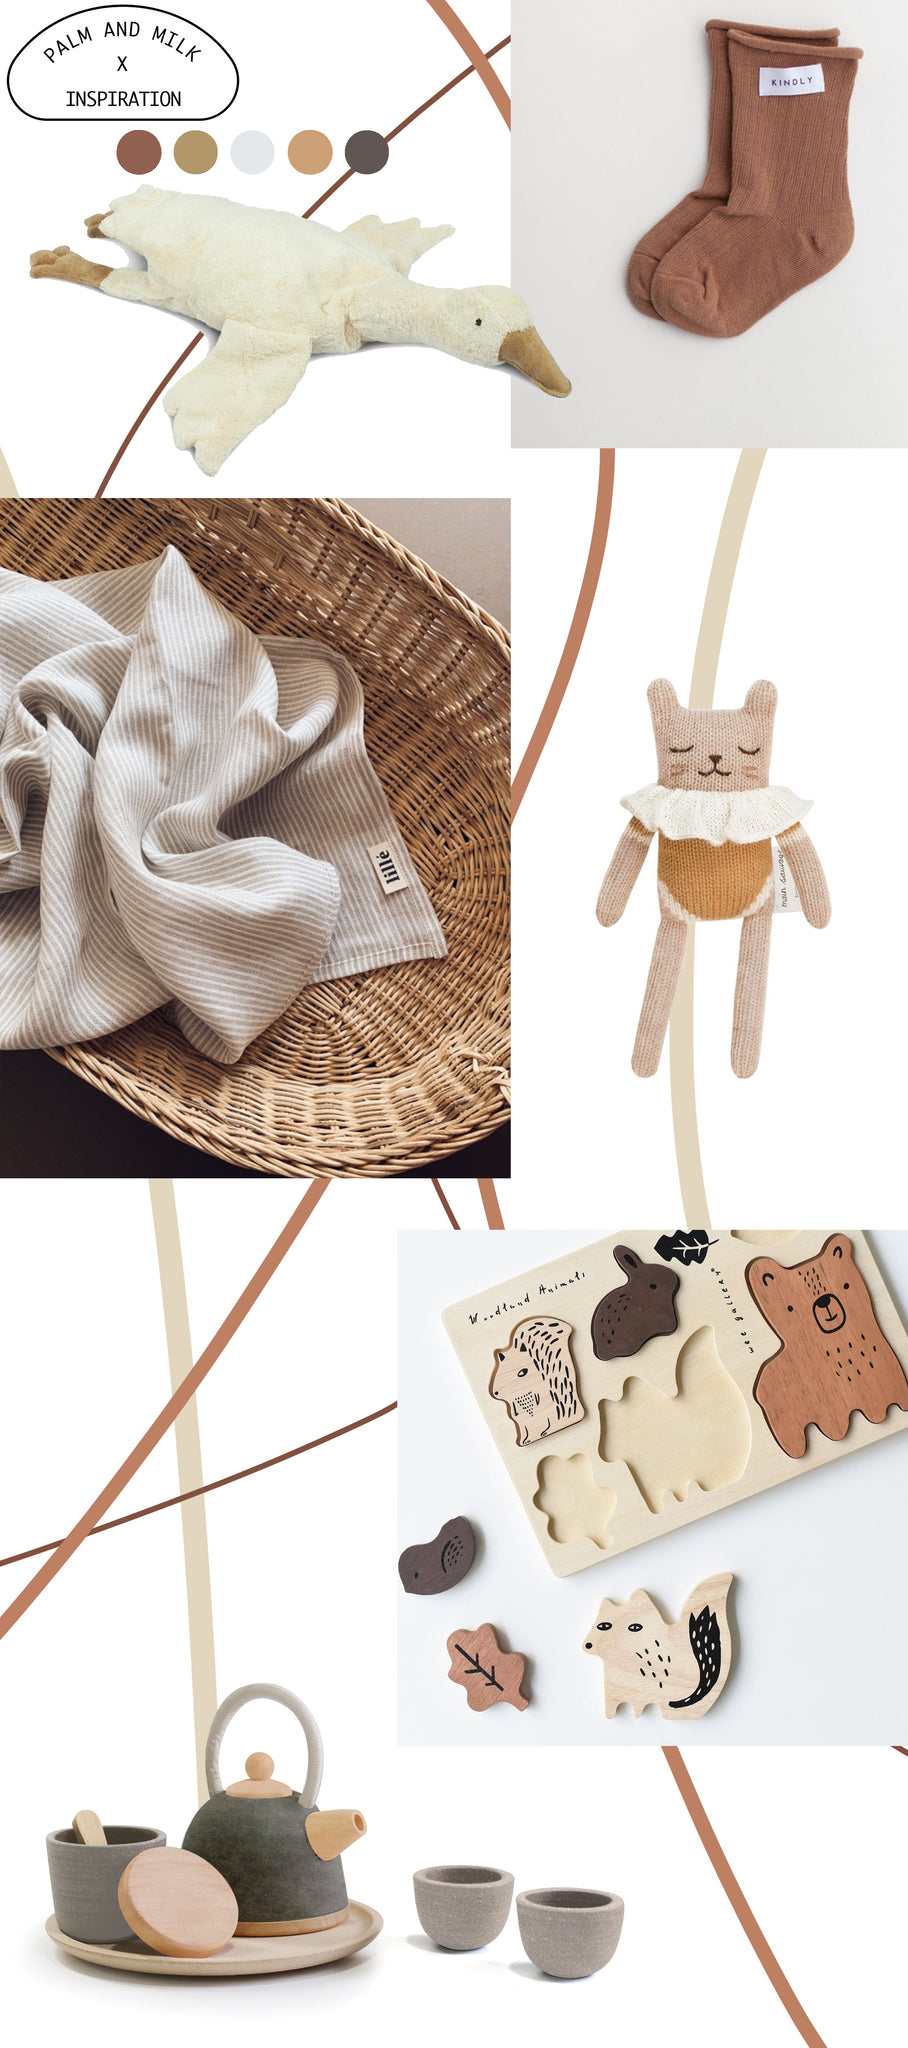 april selection palmandmilk family concept store Kindly lille made for mini senger naturwelt main sauvage wee gallery kids baby bedroom design style